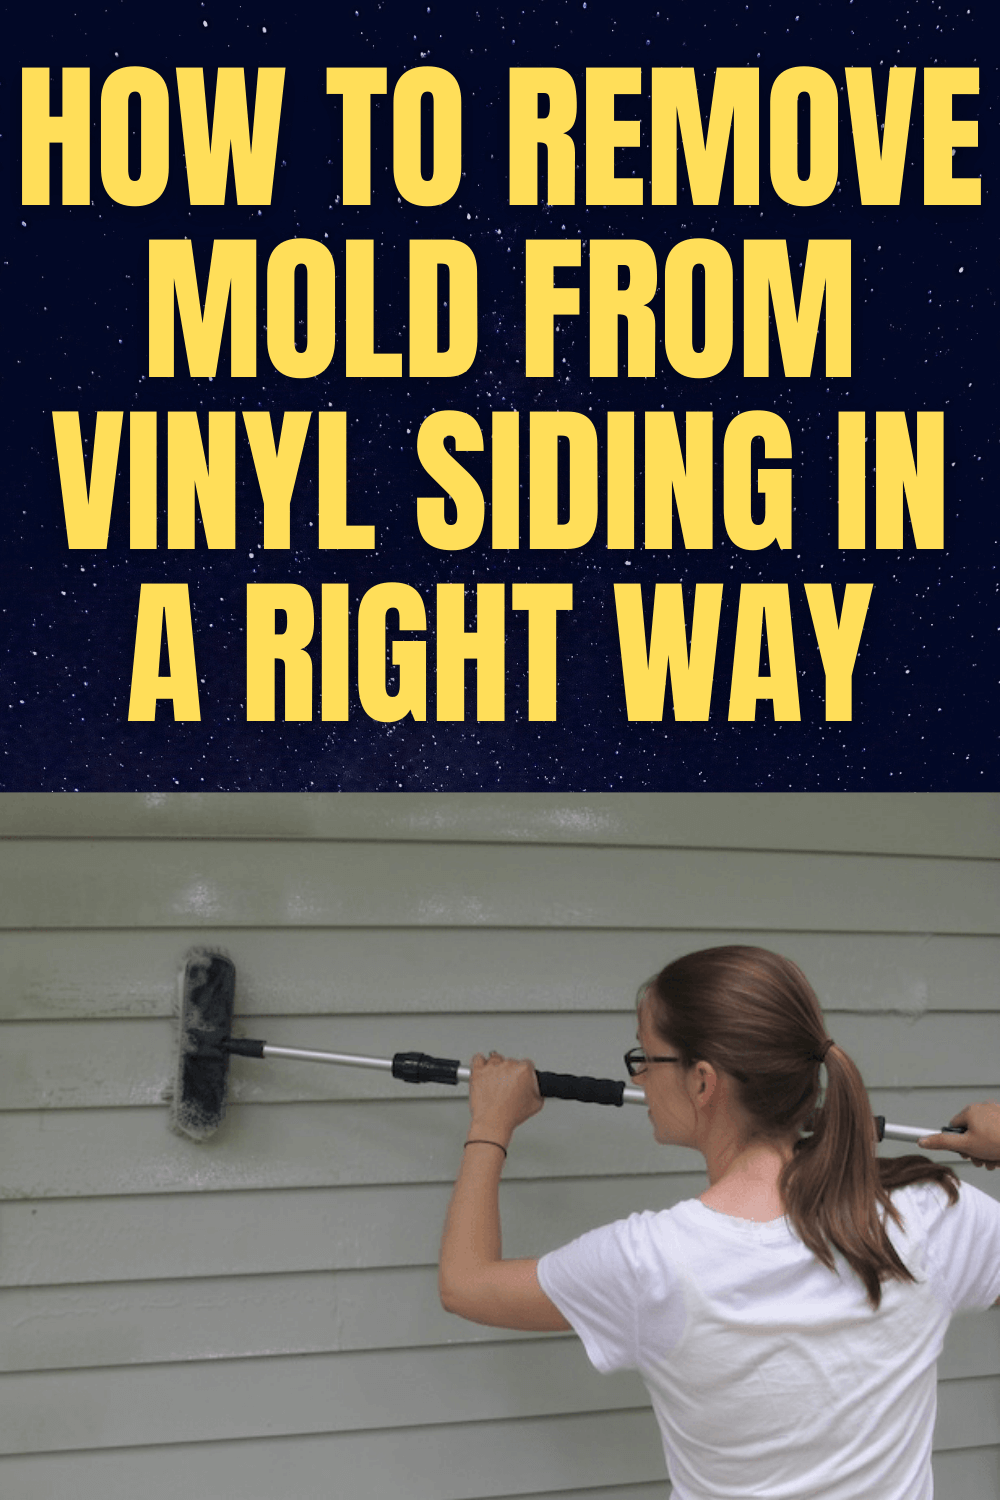 HOW TO REMOVE MOLD FROM VINYL SIDING IN A RIGHT WAY